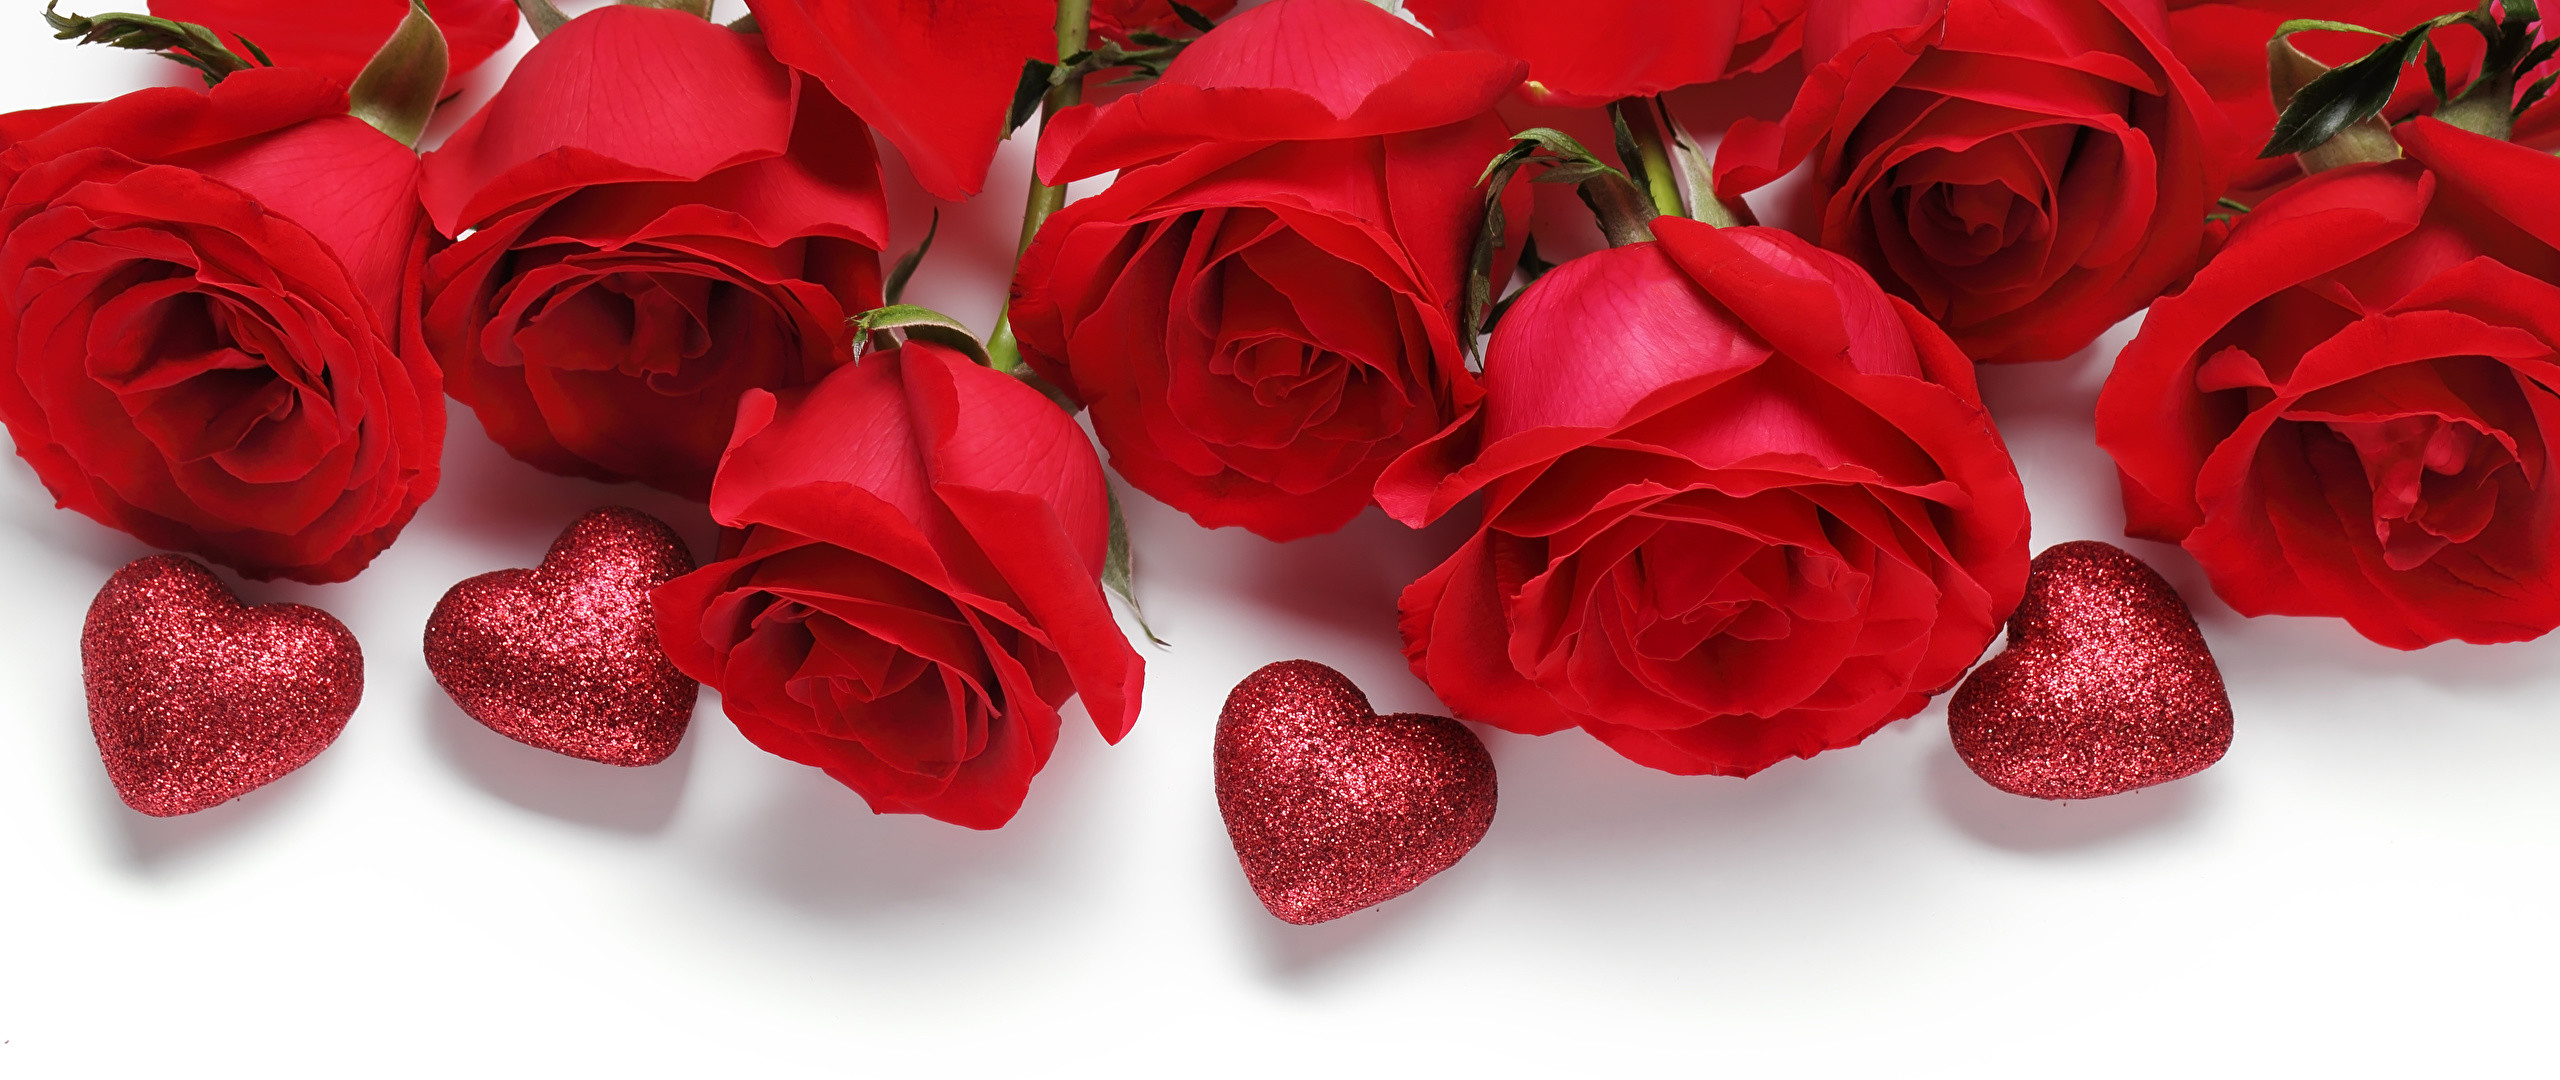 Wallpaper Valentine's Day Heart Red Roses Flowers White background 2560×1080